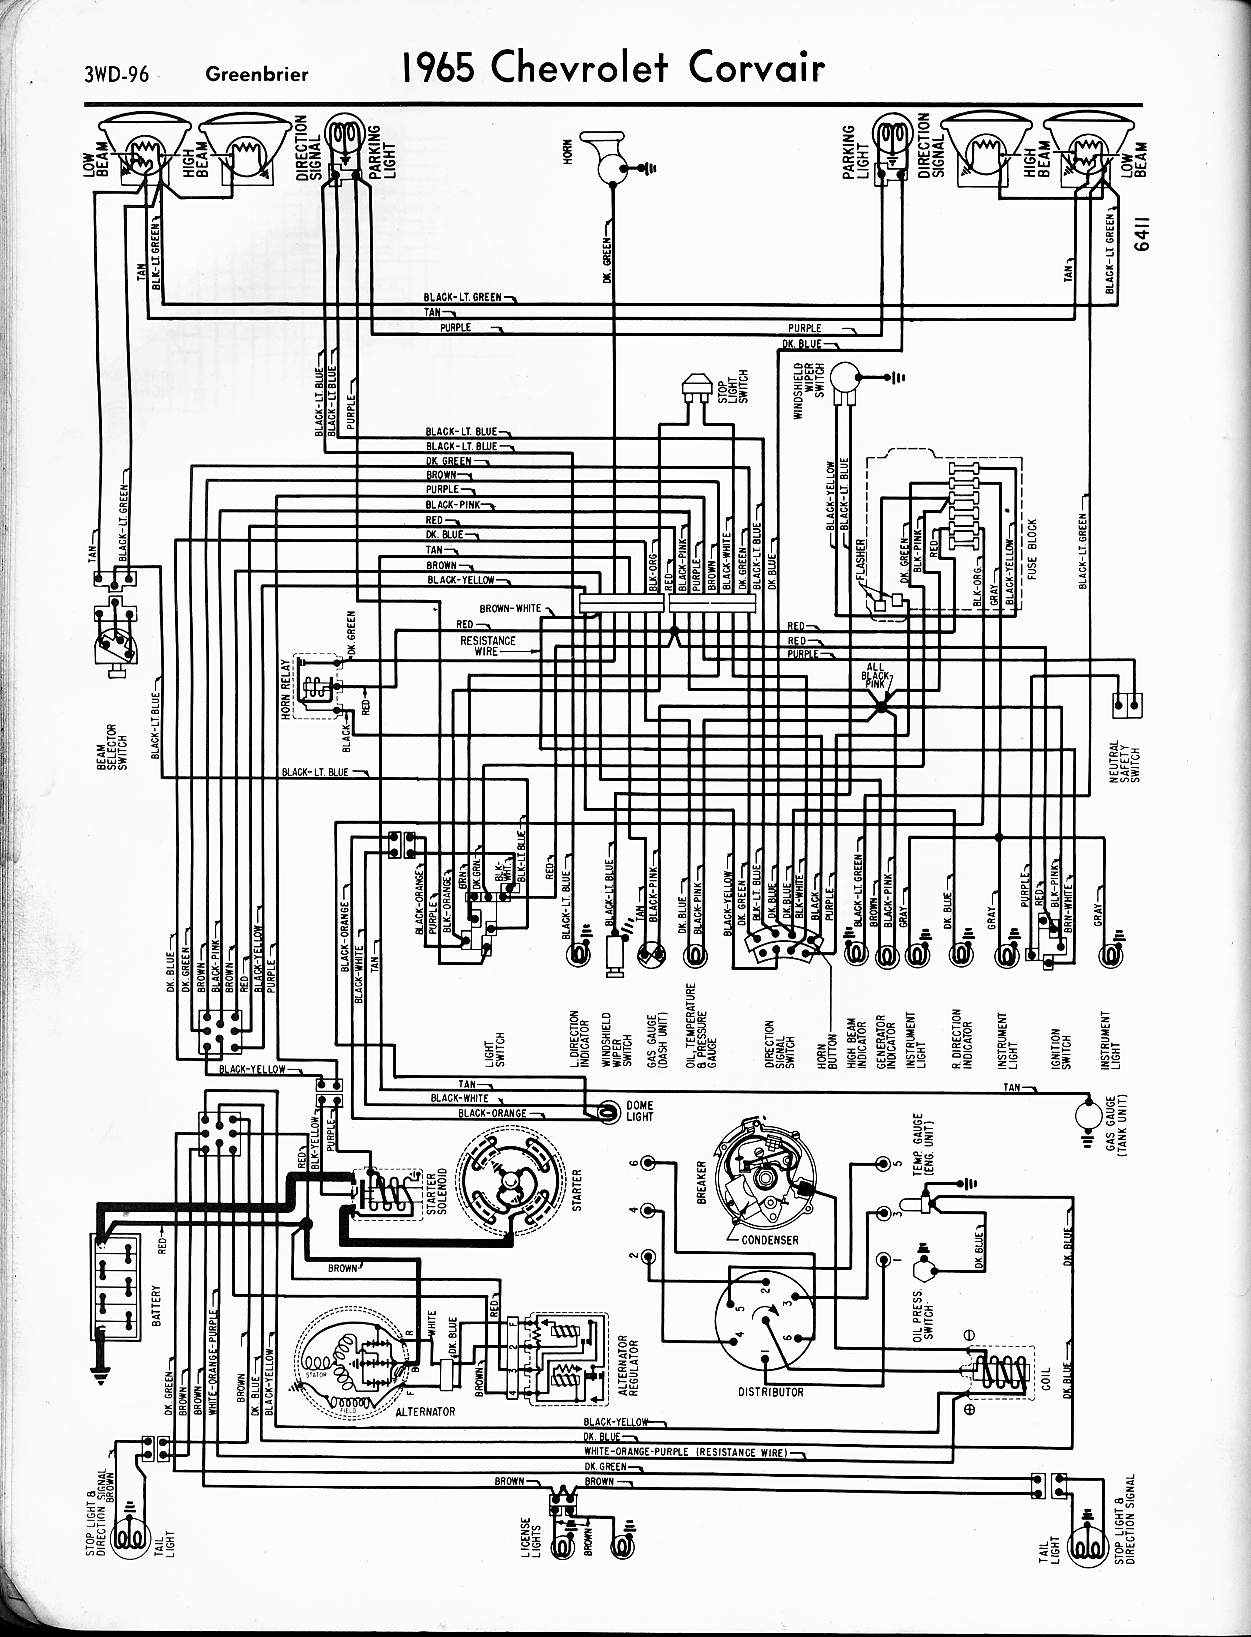 72 Chevy Impala Wiring Diagram